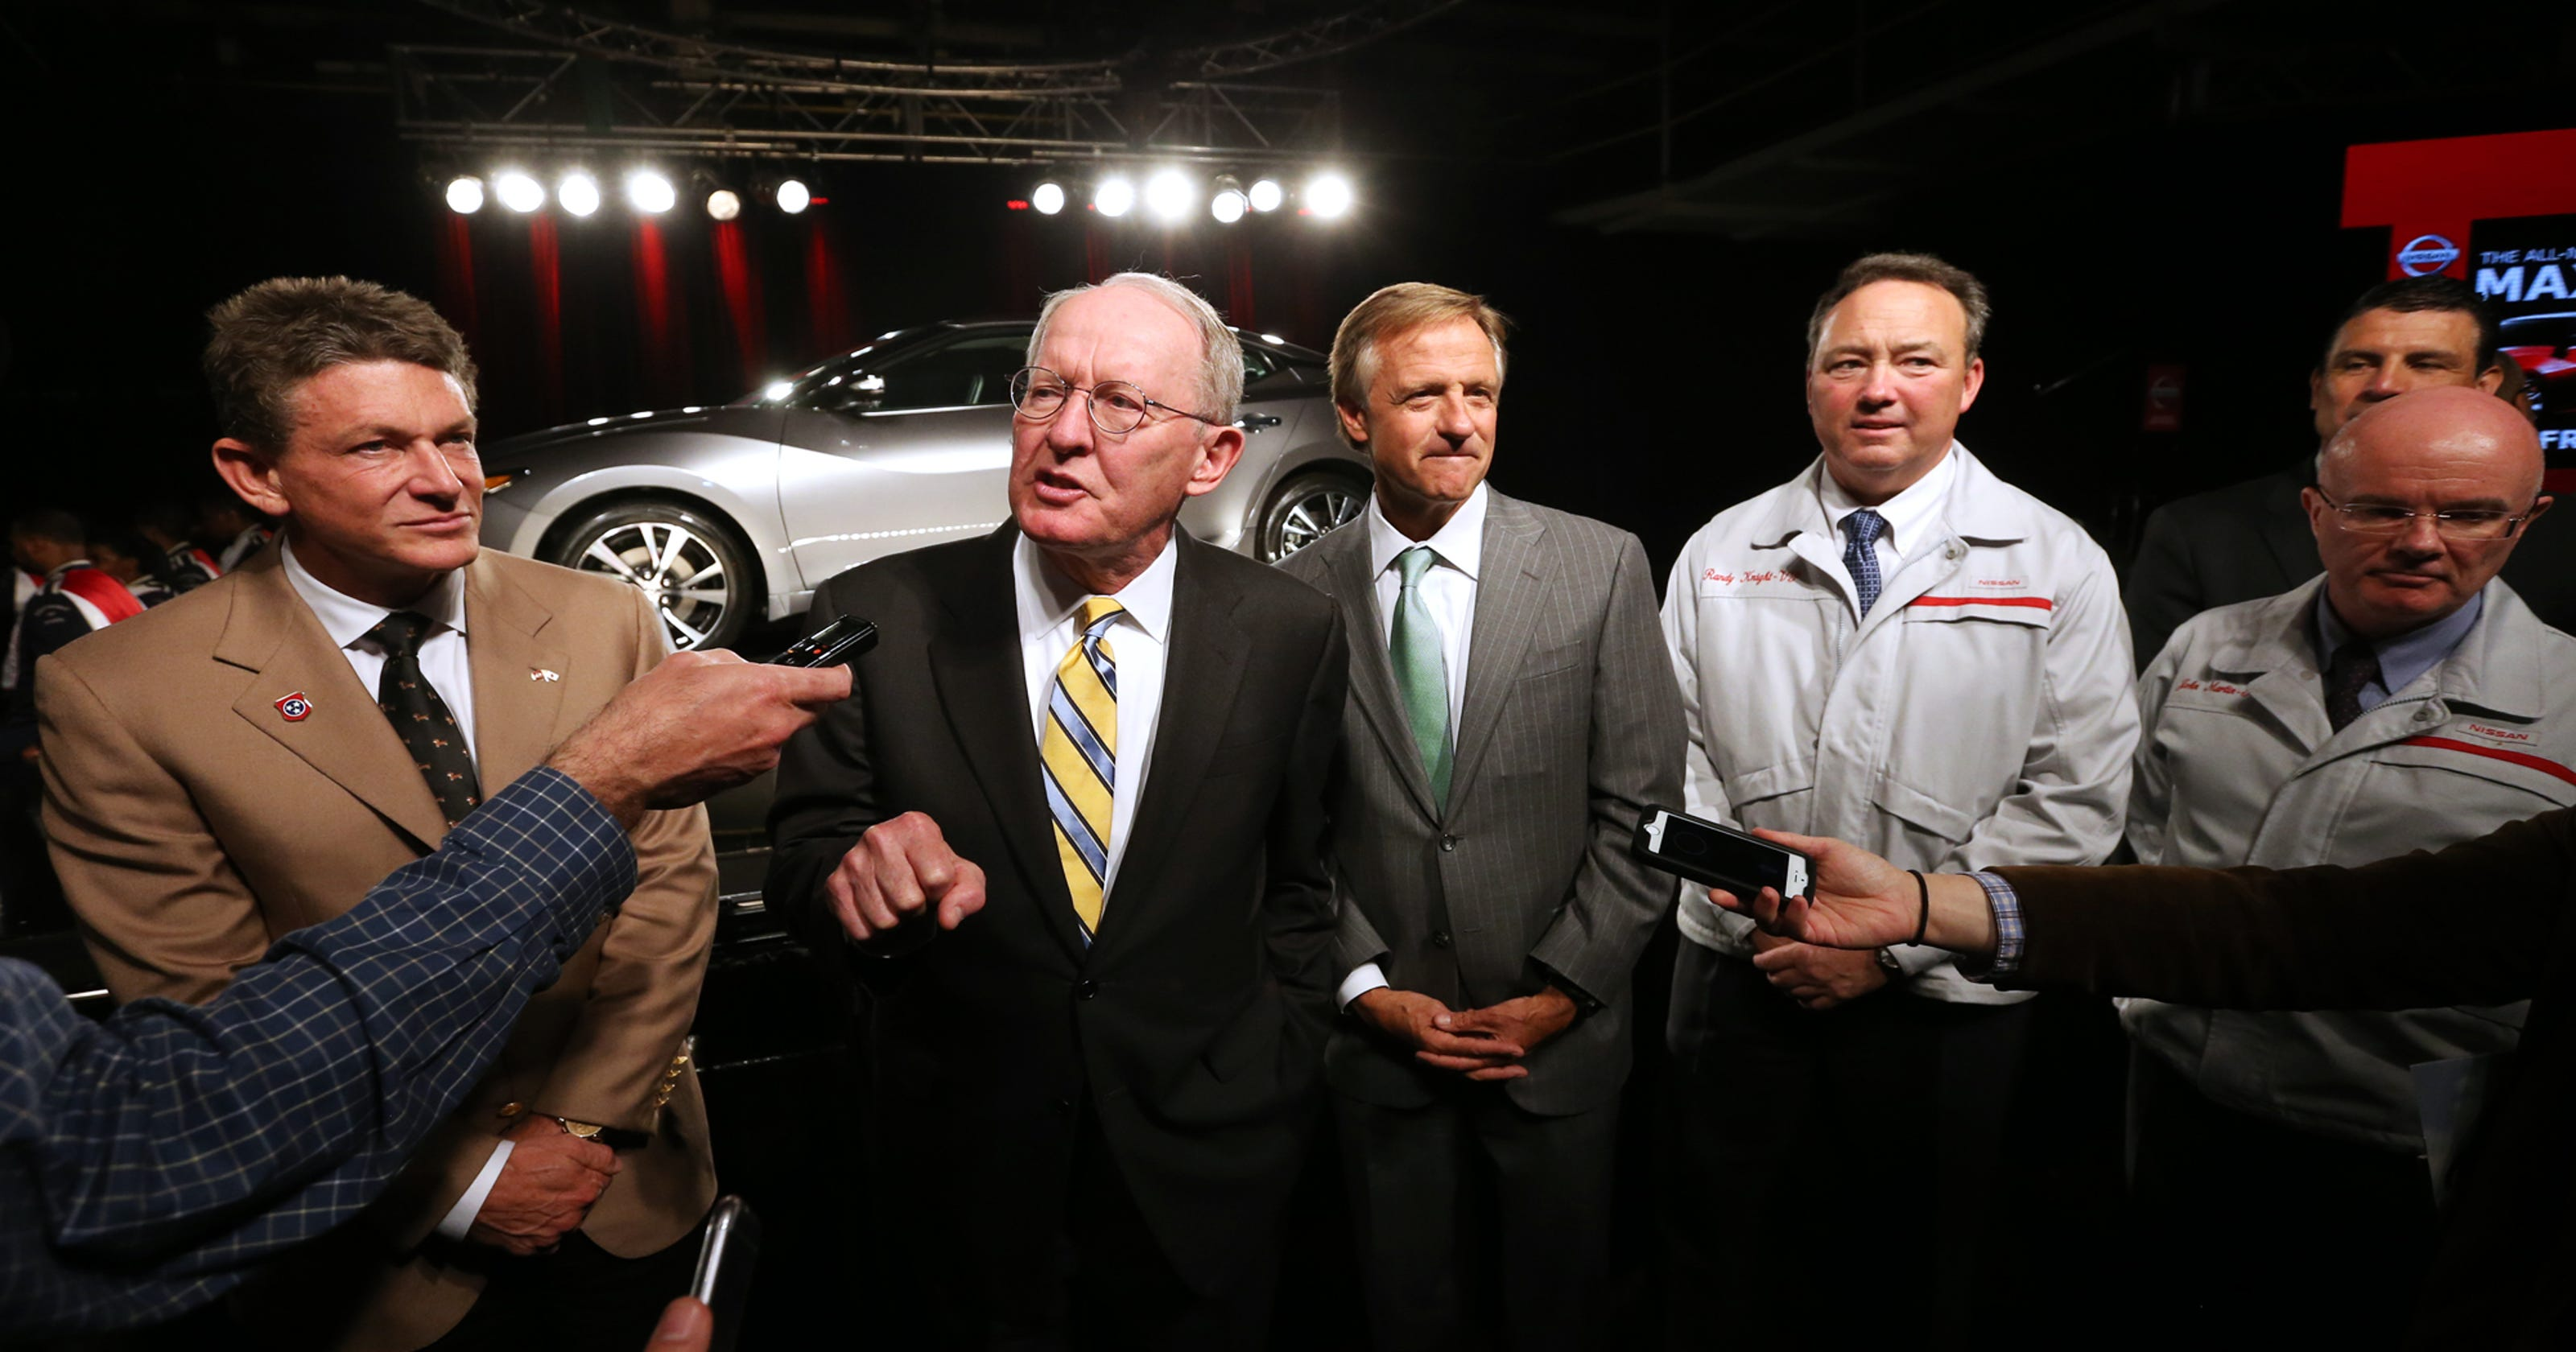 human faces tell how nissan transformed tn economy